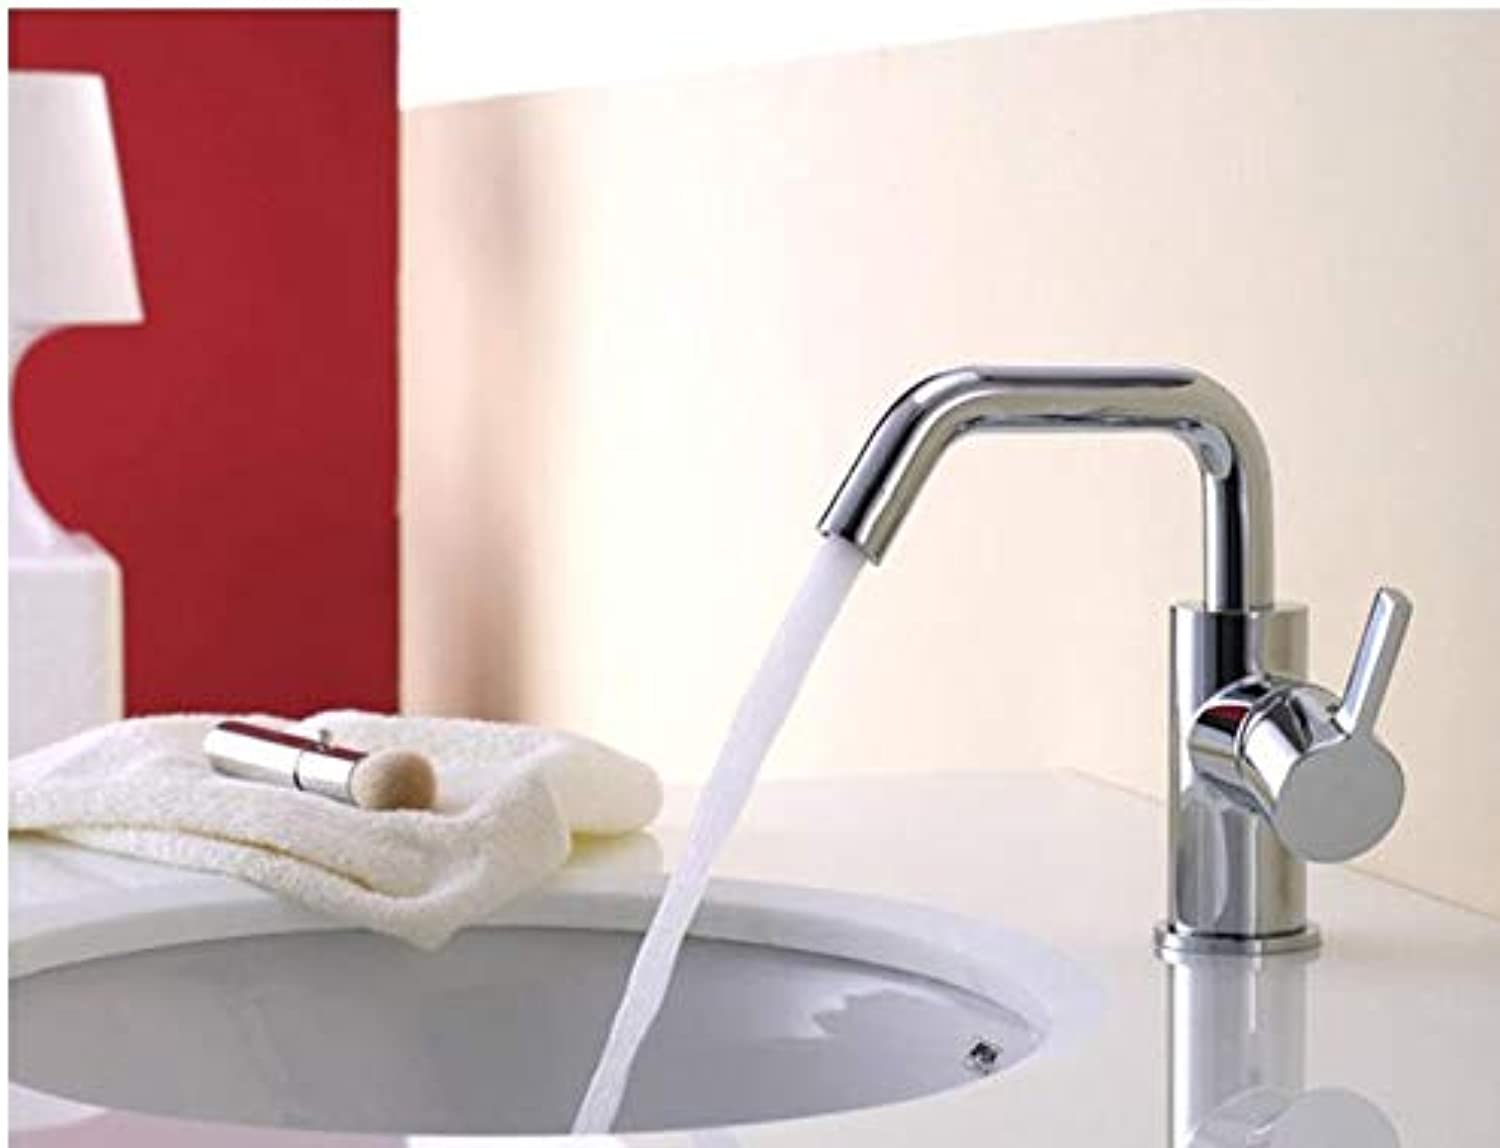 Mkkwp Single Lever Brand New Copper Bathroom Basin Faucet Mixer Chrome Hot Cold Water Mixer